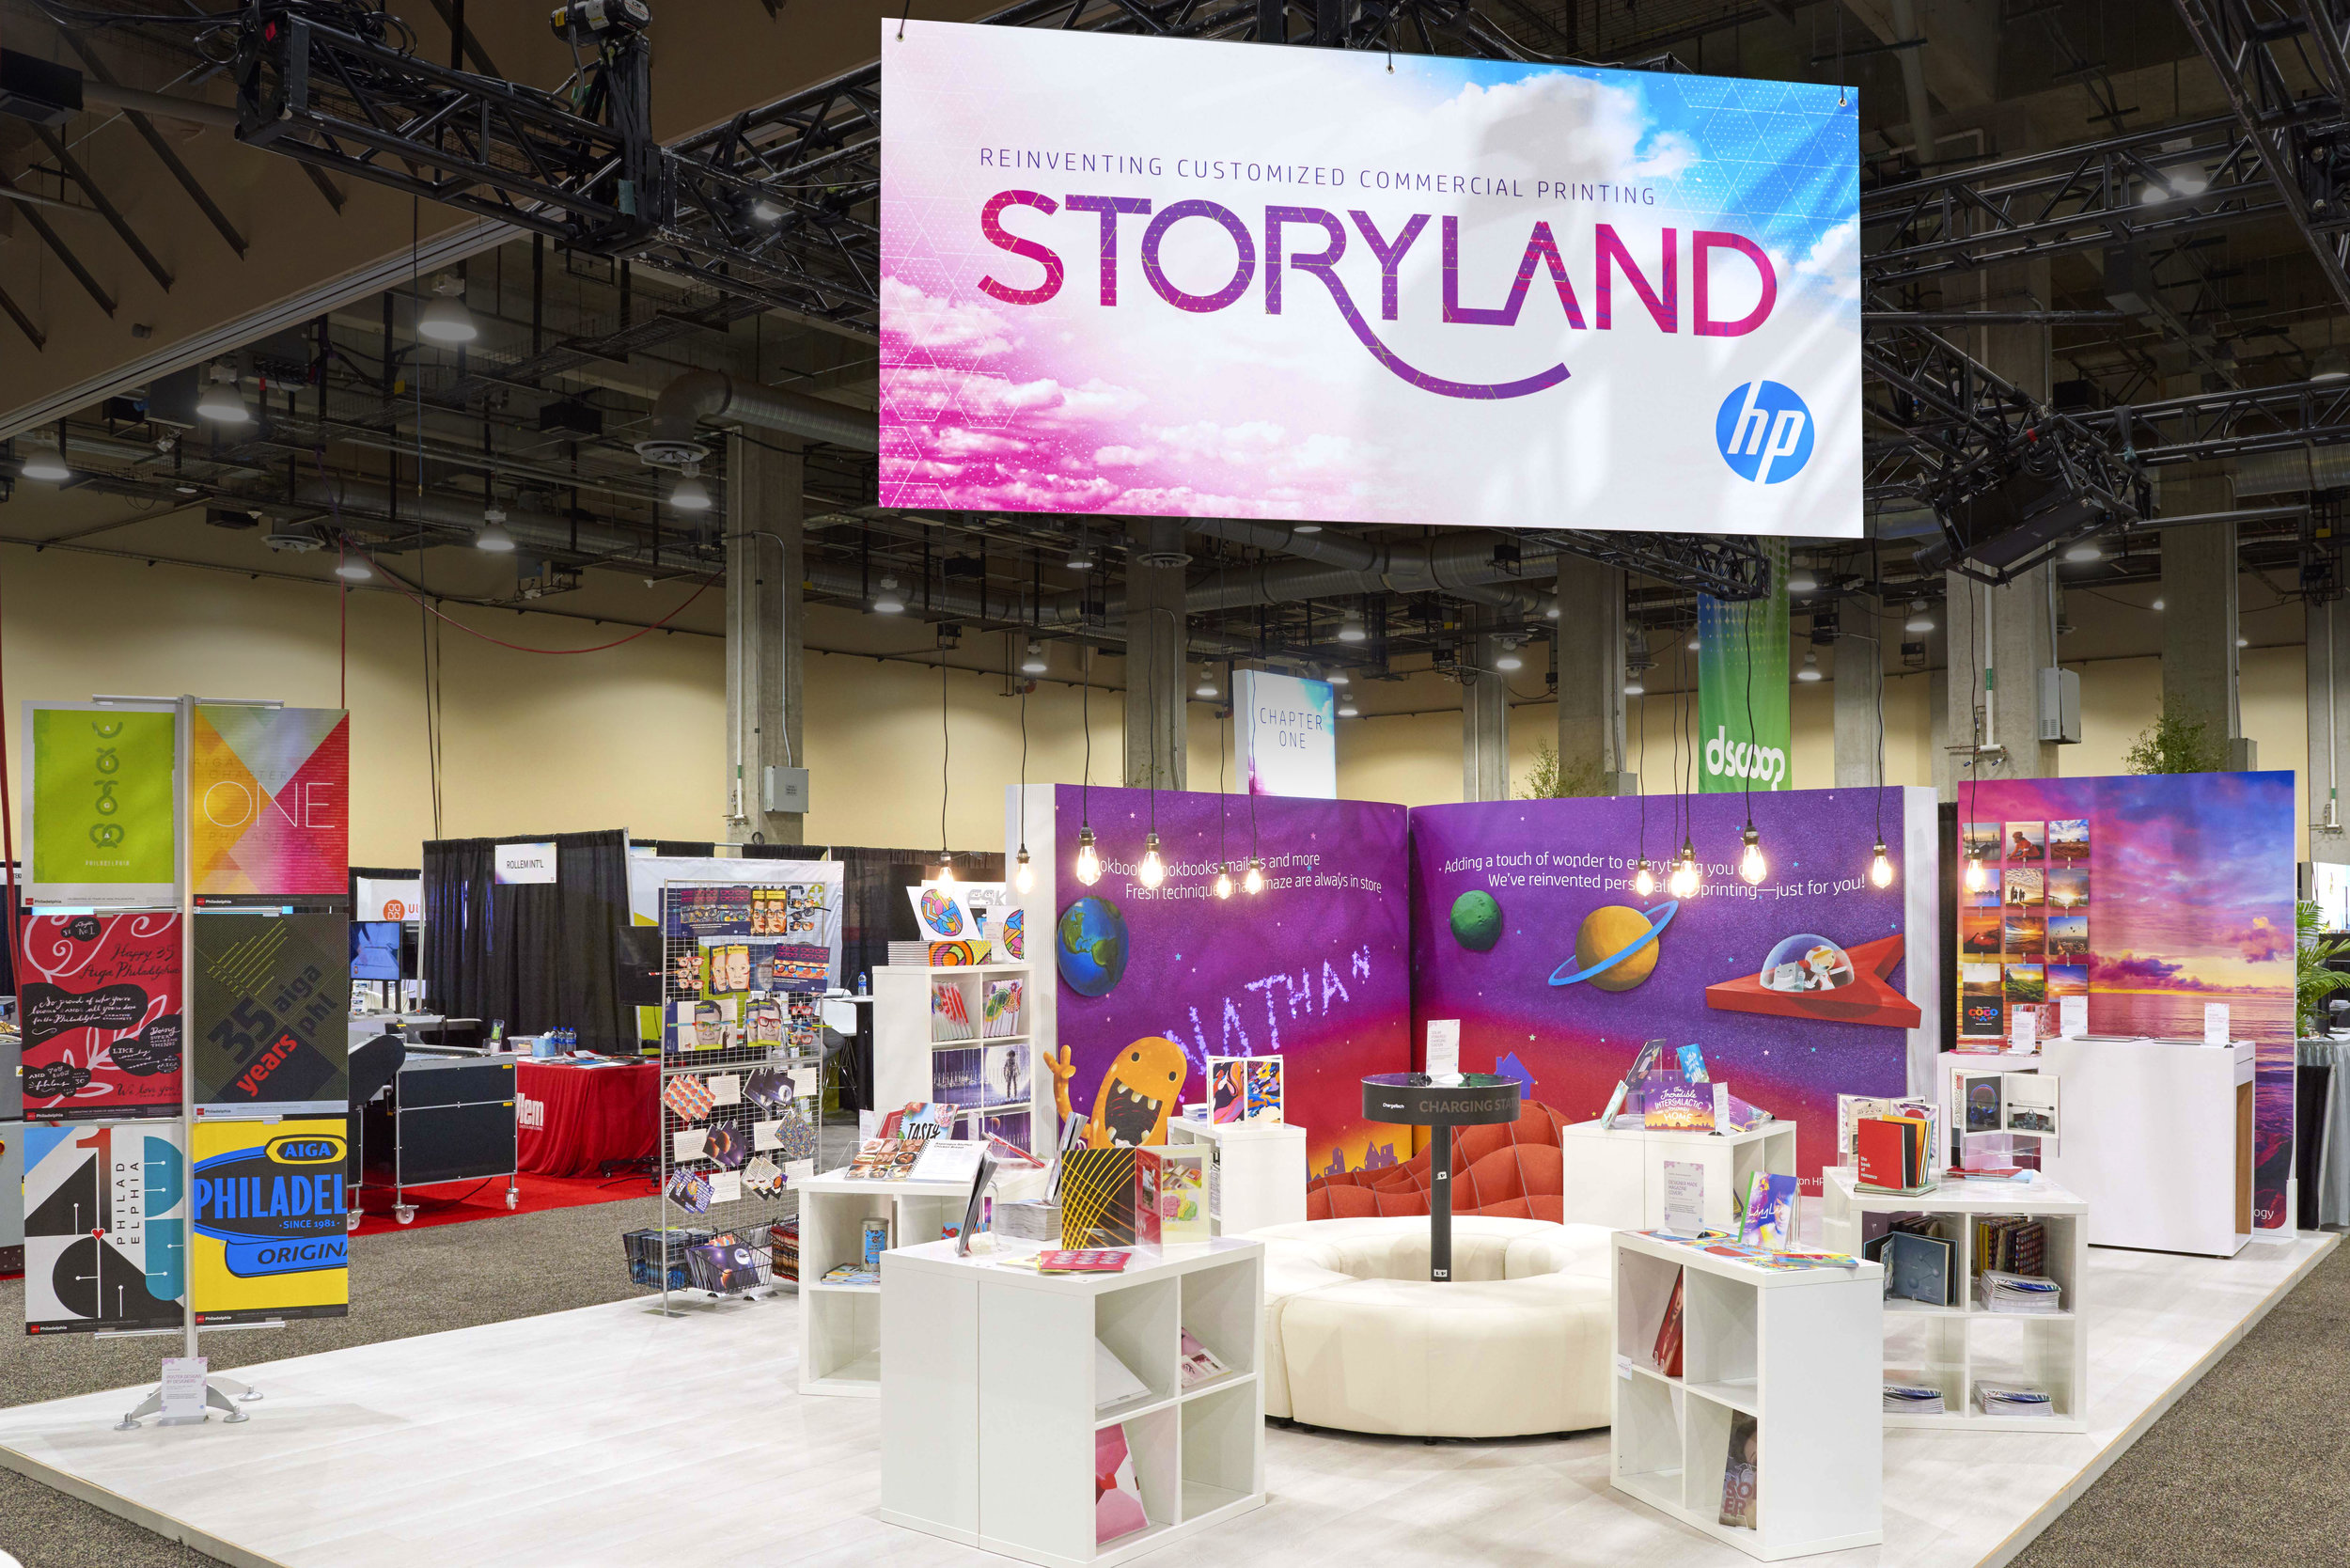 STORYLAND_FULL_ROOM.jpg